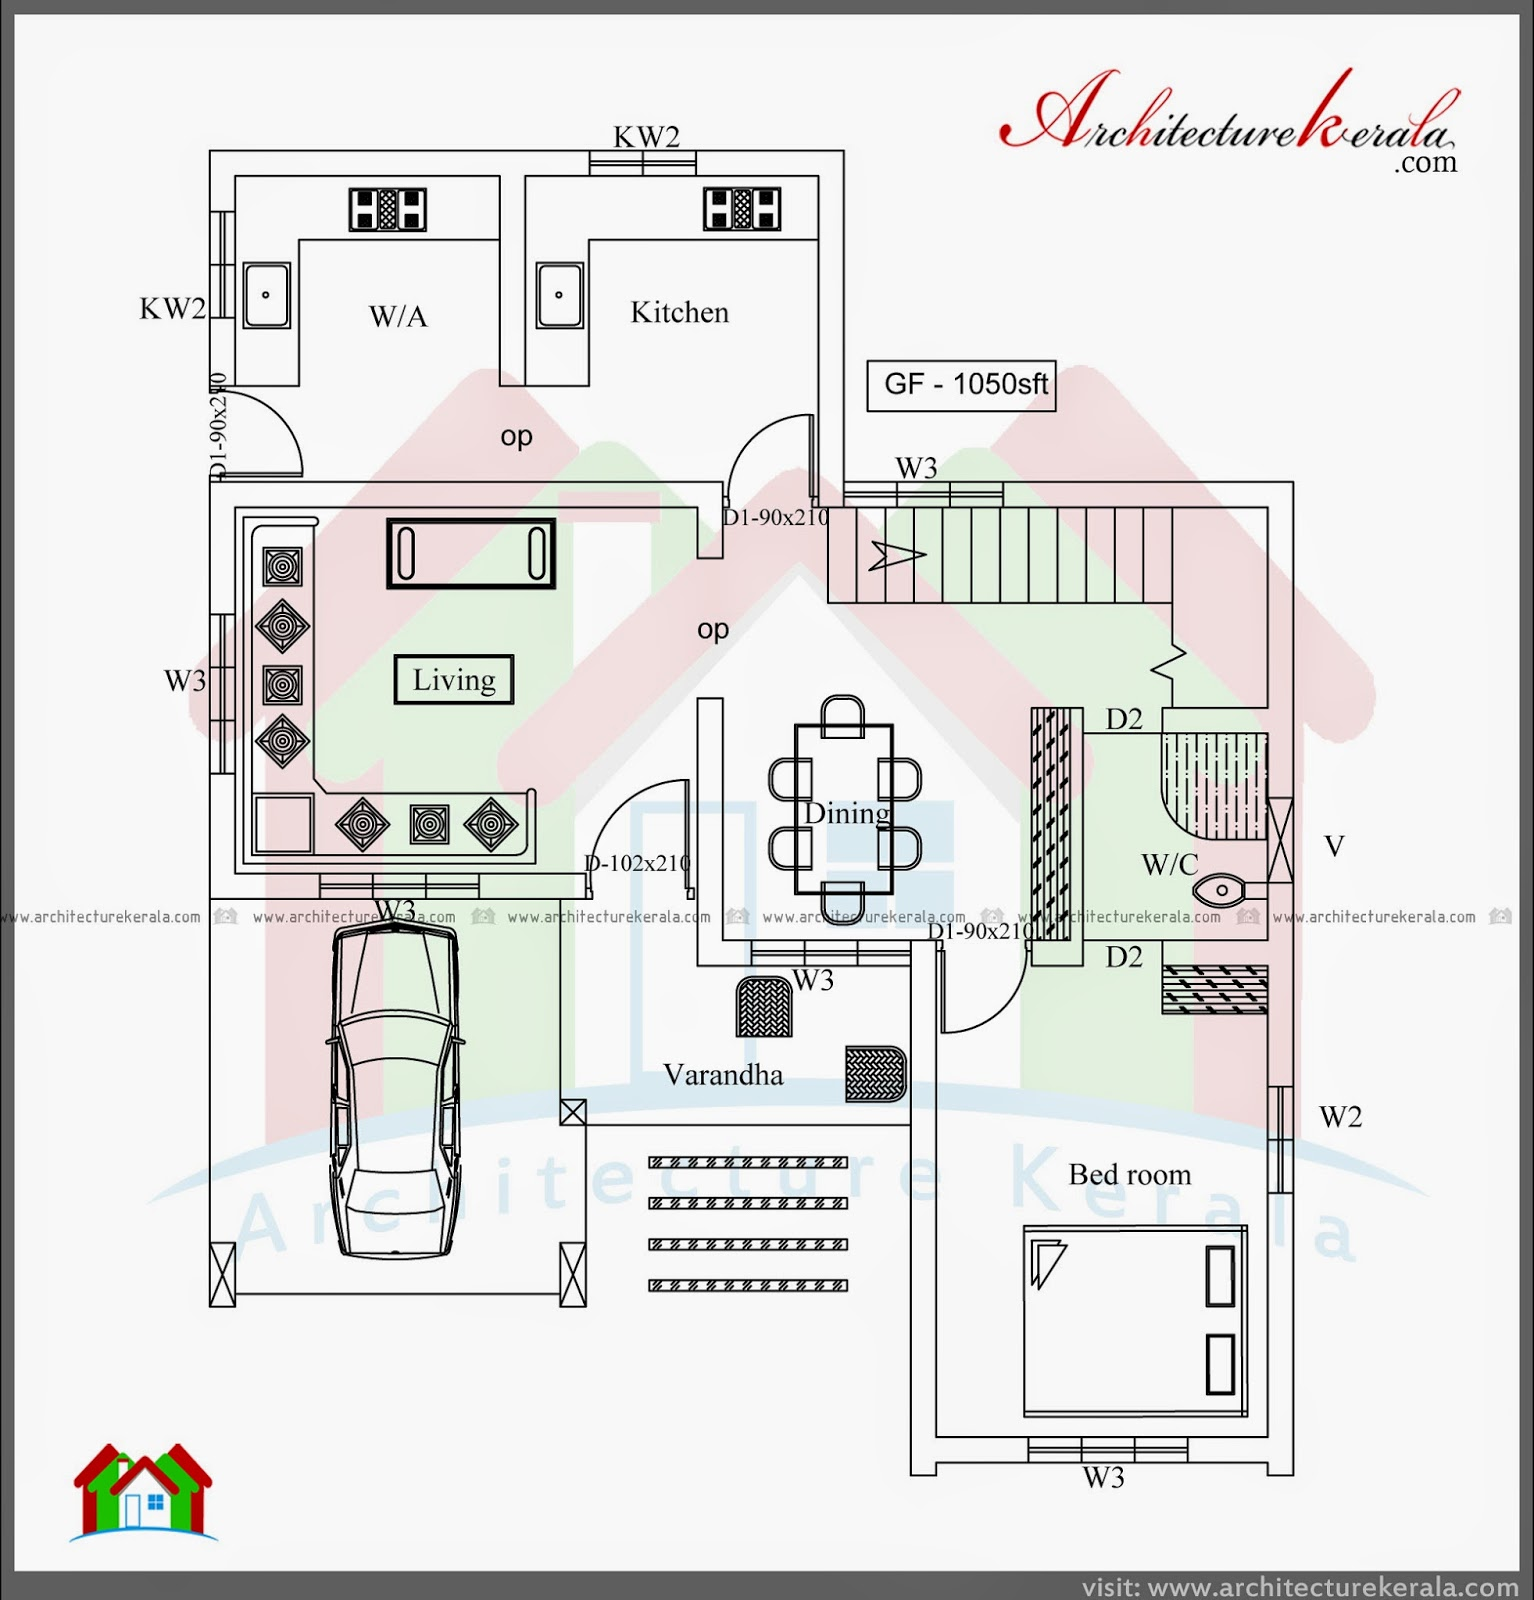 THREE BEDROOM TWO STOREY HOUSE PLAN